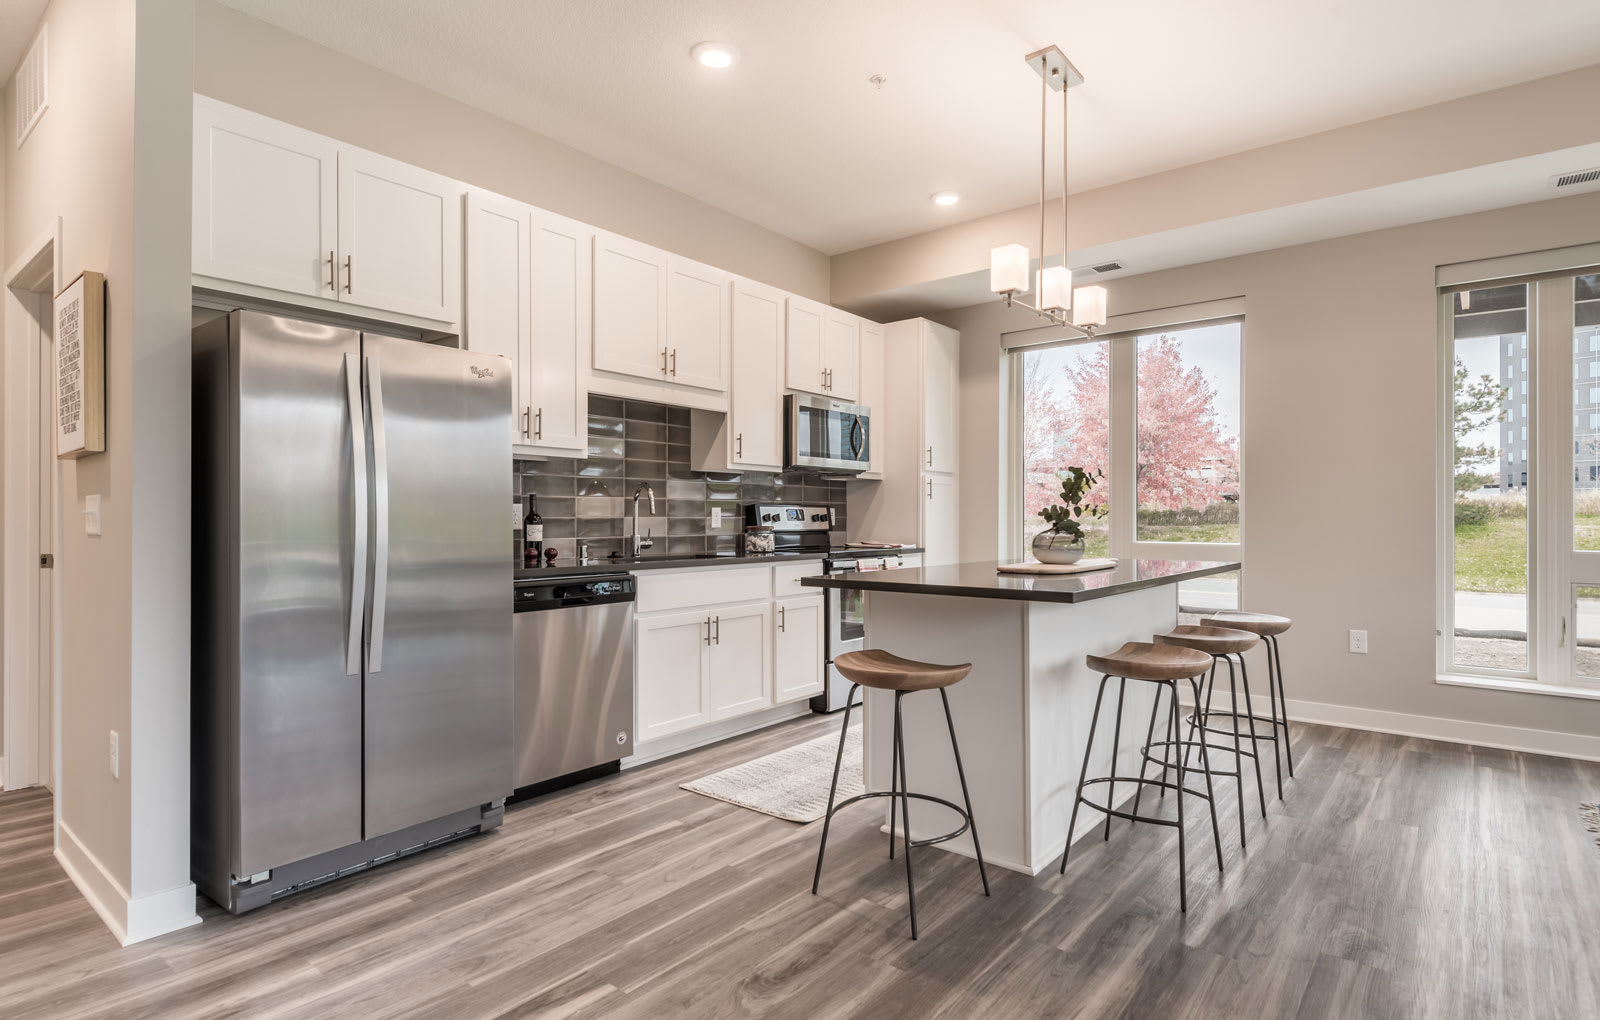 Spacious kitchens feature granite counter tops and spacious open floor plans